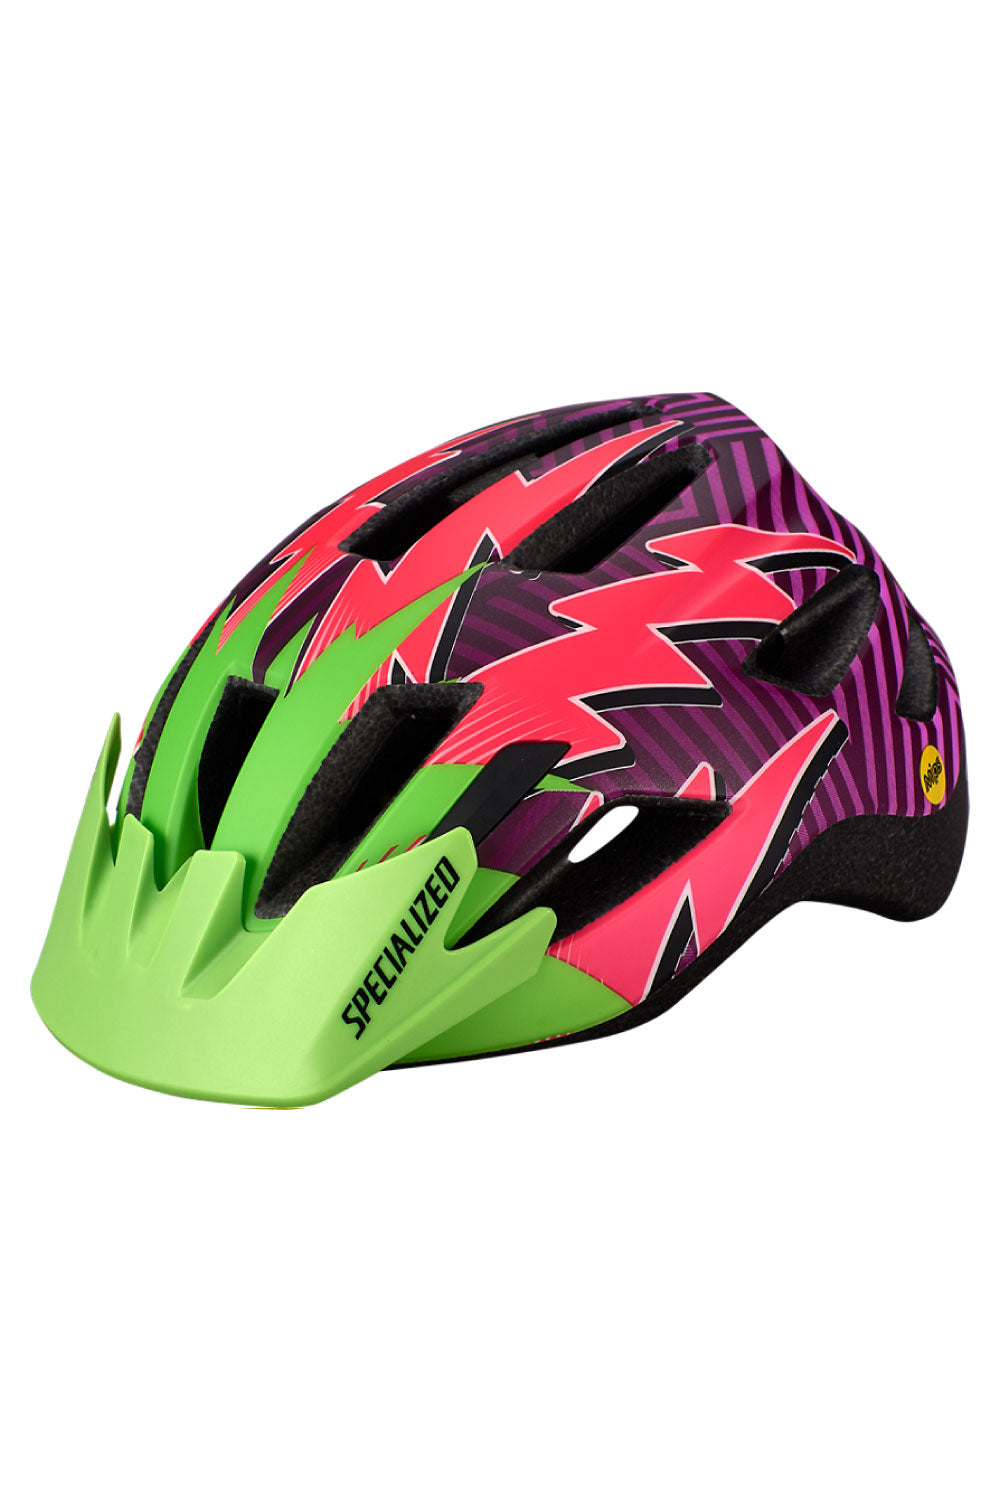 MONSTER GREEN / ACID PINK LIGHTNING